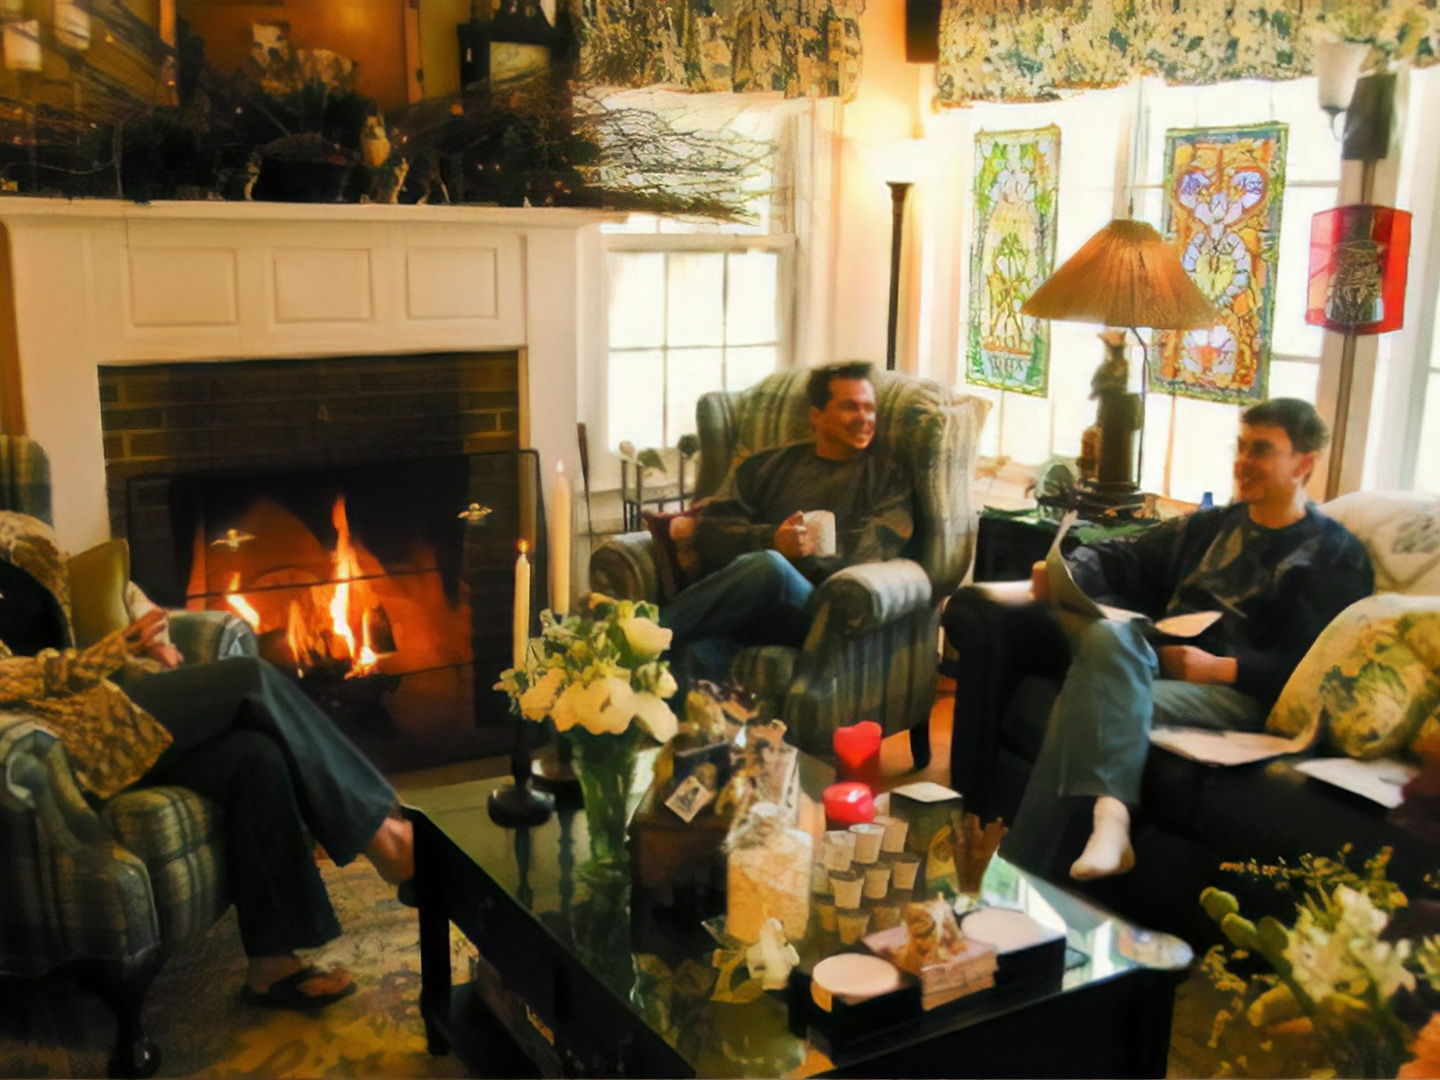 A group of people sitting around a living room at Phineas Swann Inn & Spa.